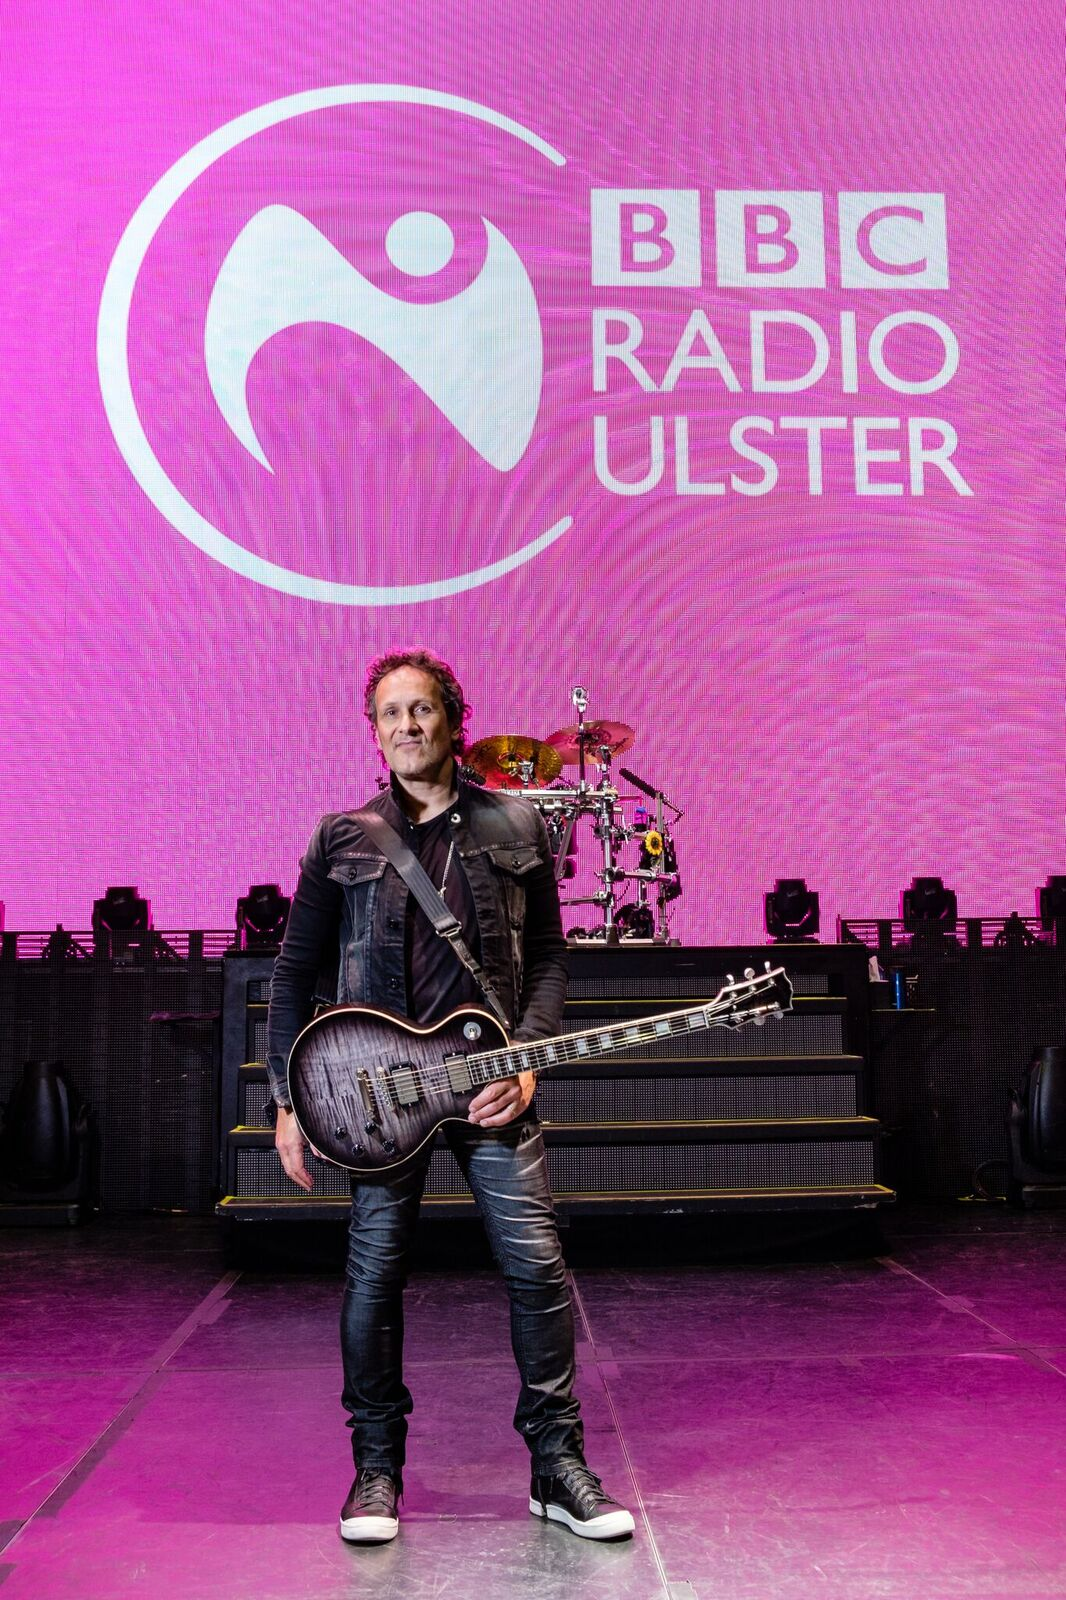 BBC Ulster Announces Series With Viv Campbell (Def Leppard)